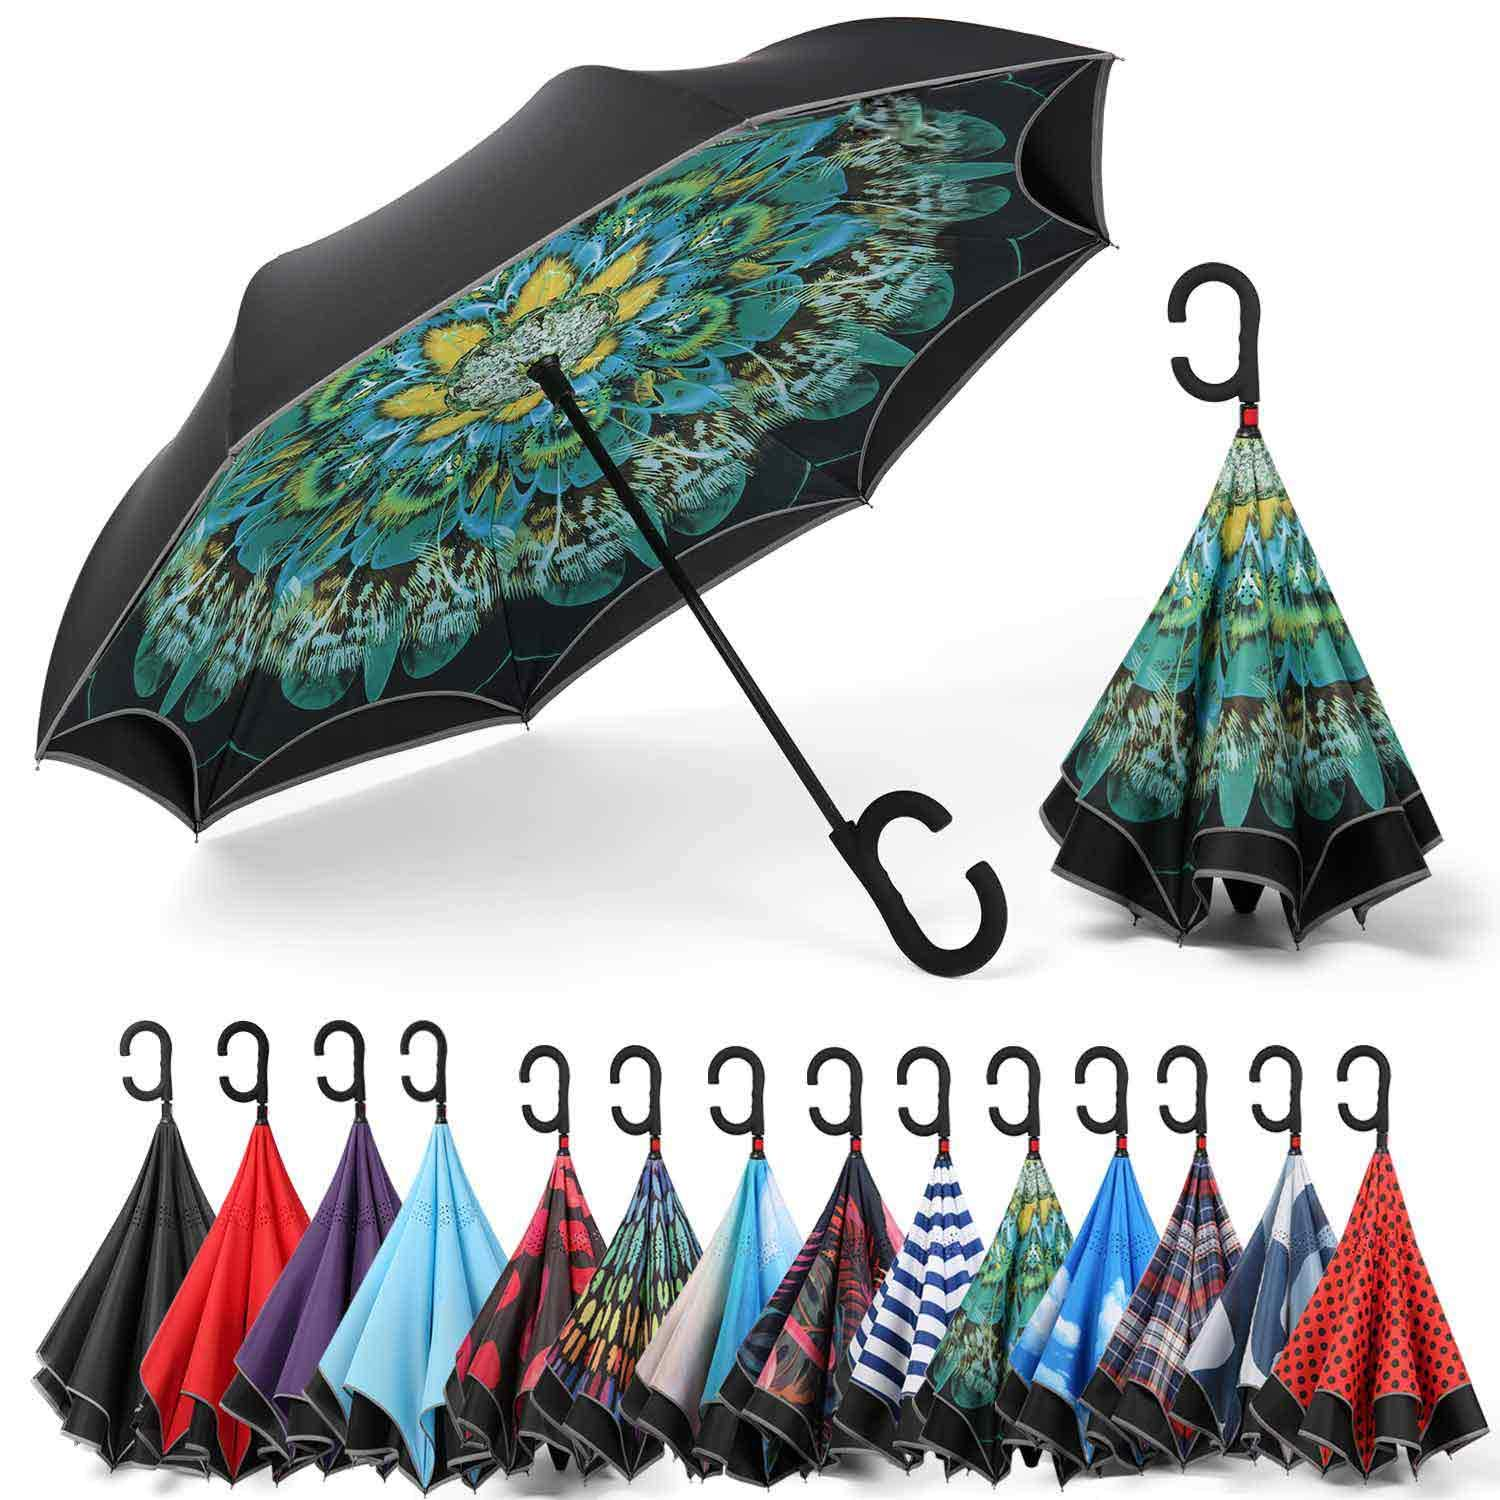 Siepasa Reverse Inverted Windproof and Anti-UV Umbrella Upside Down Umbrellas with D-Shaped Handle for Women and Men Double Layer Inside Out Folding Umbrella with Reflective Stripe